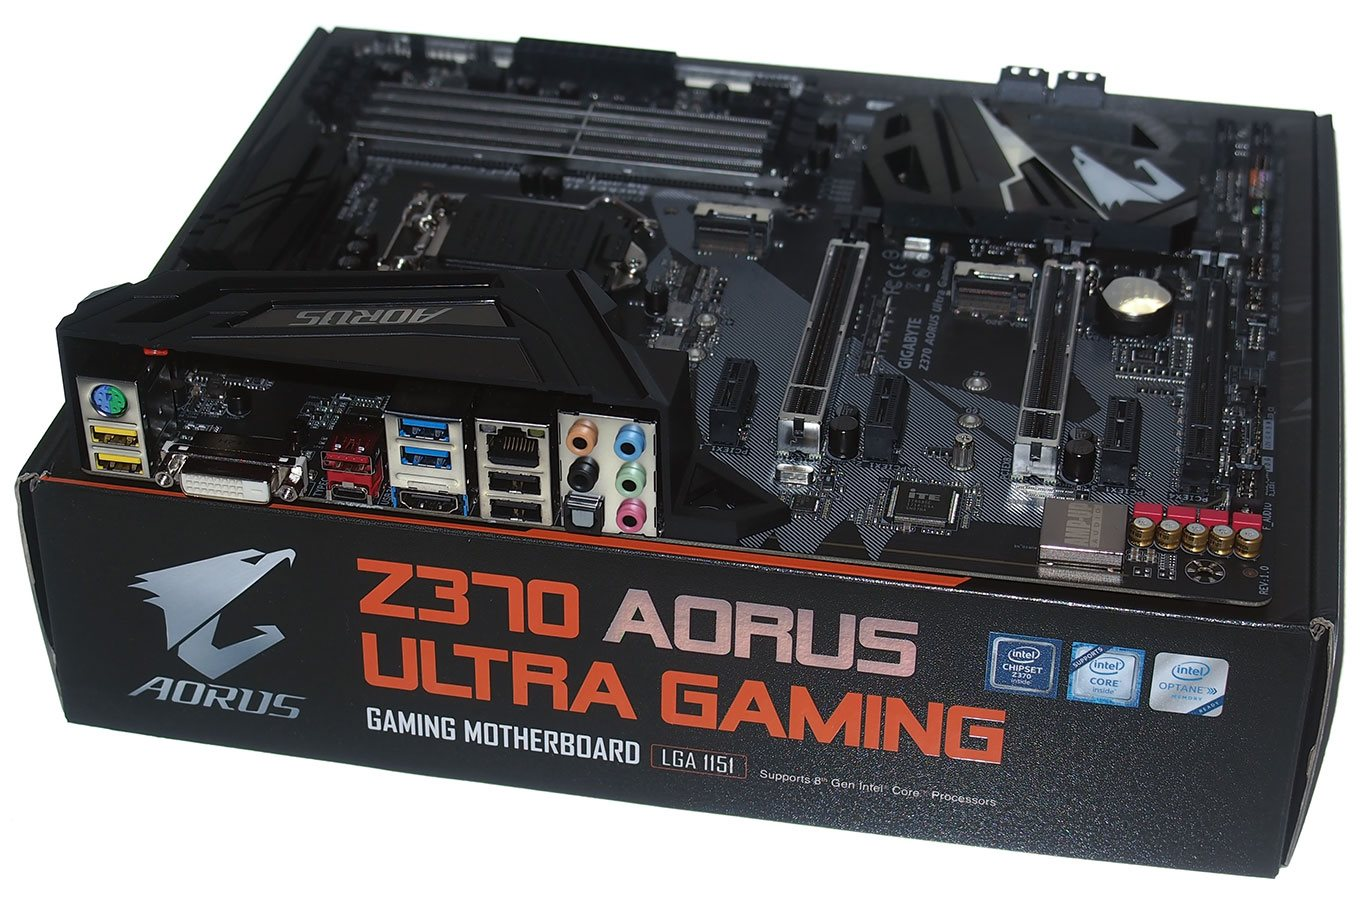 big_gb-mobo-box.jpg